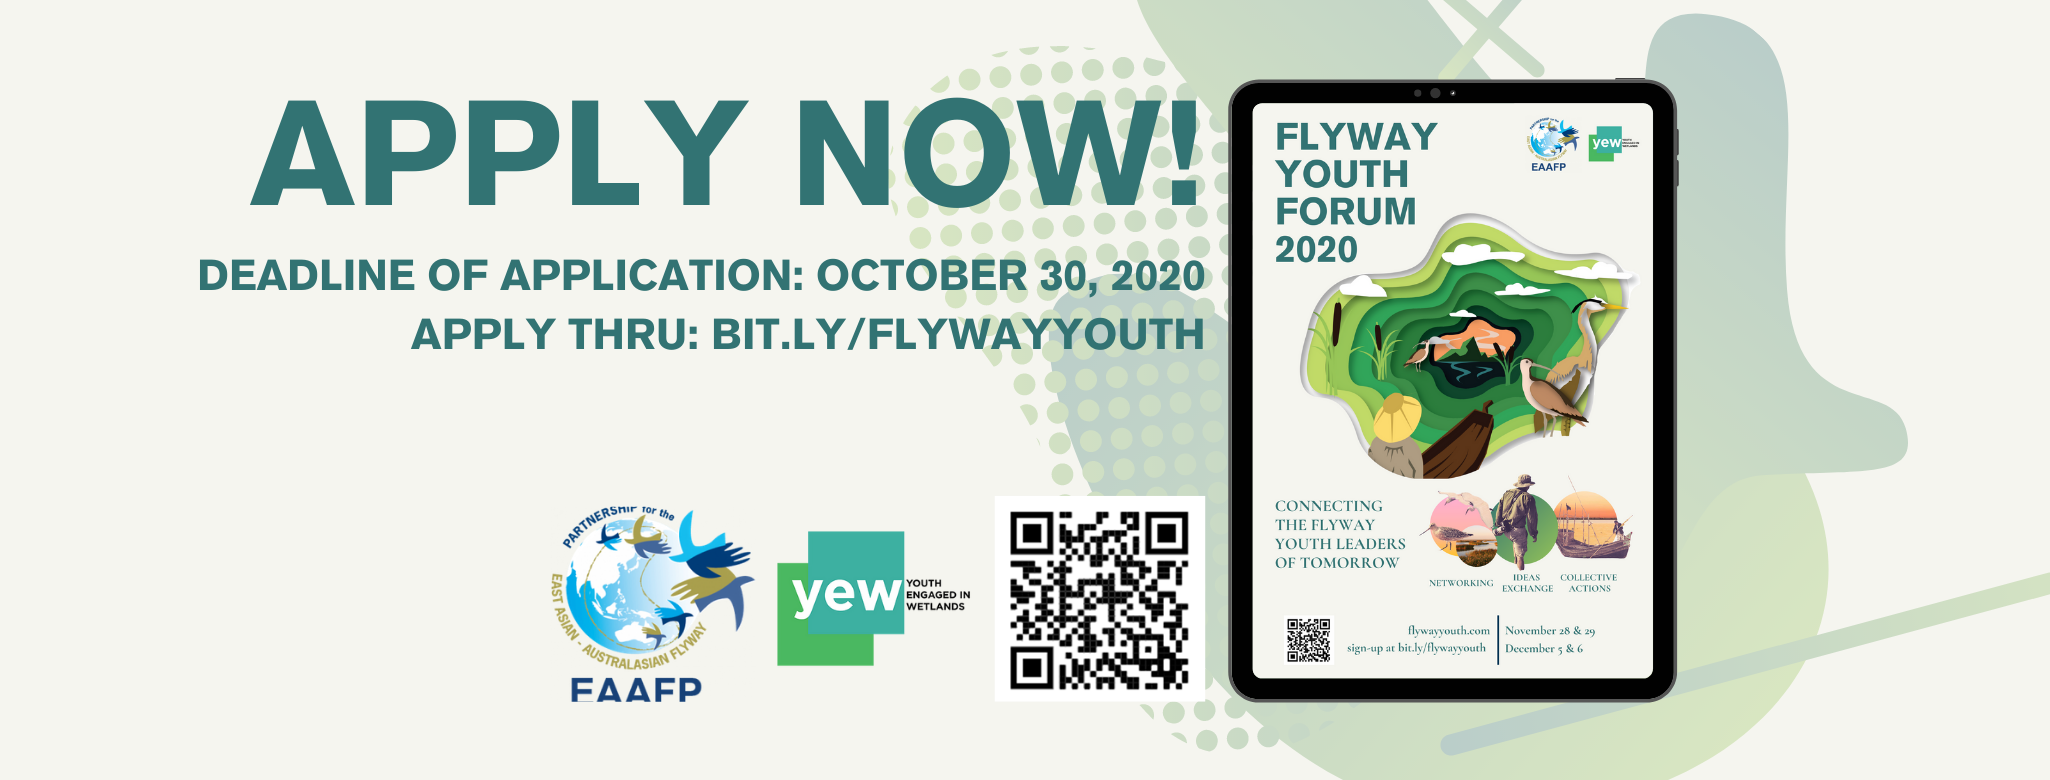 Flyway Youth Forum 2020